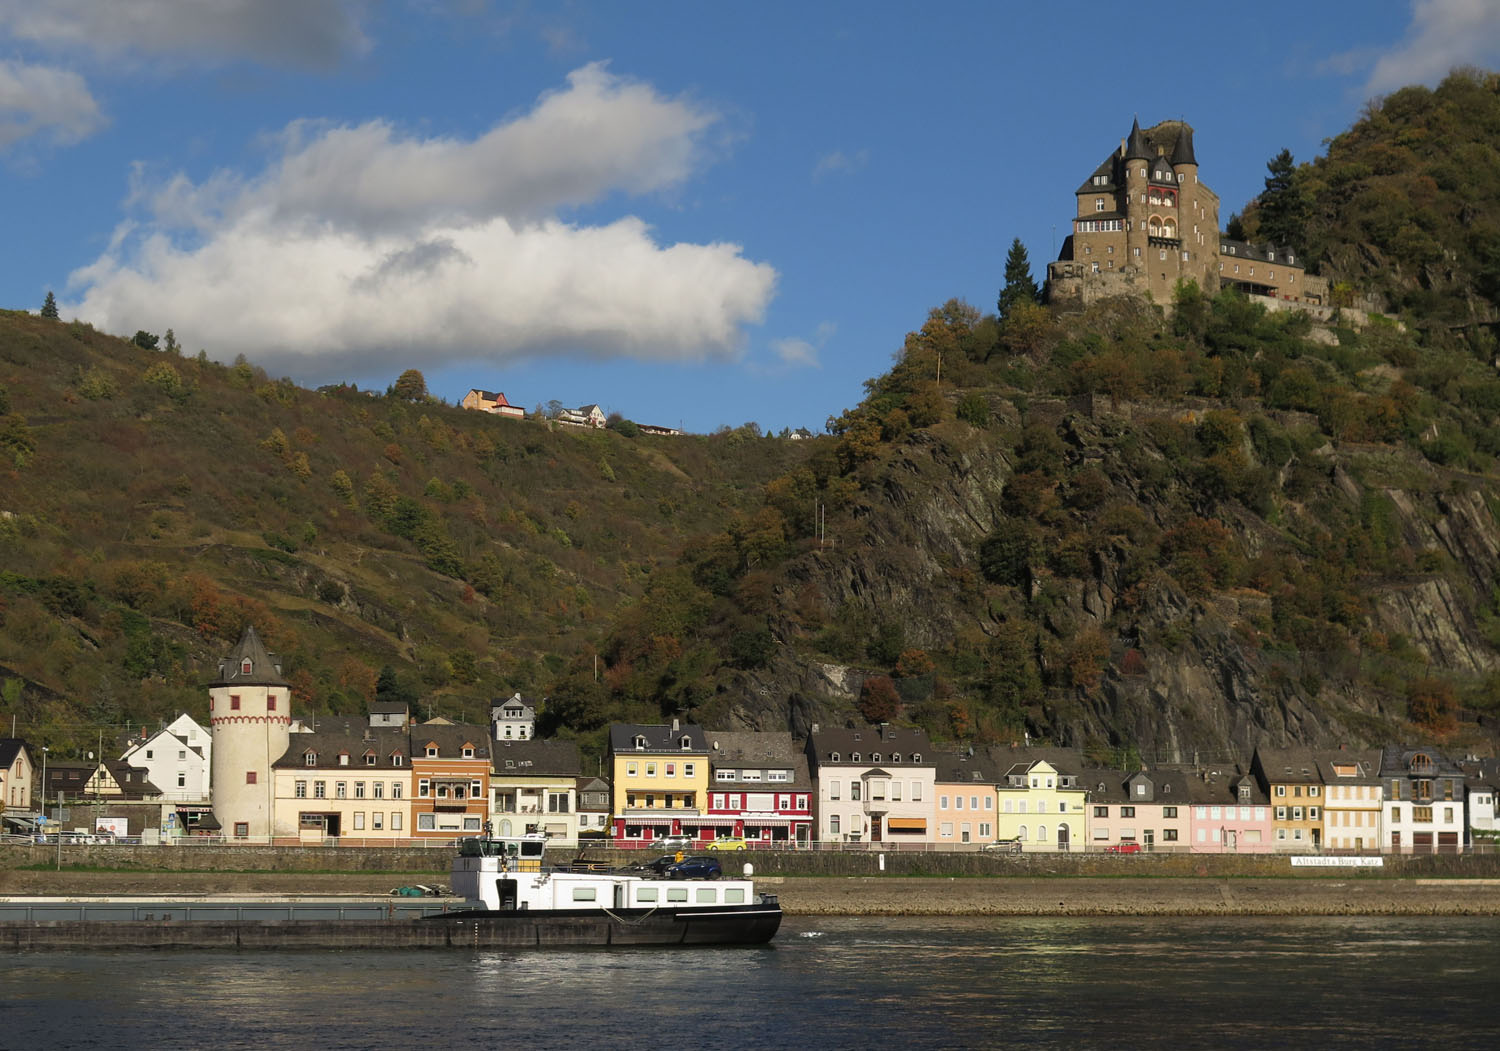 Germany-Rhine-River-Valley-Views-From-Saint-Goar